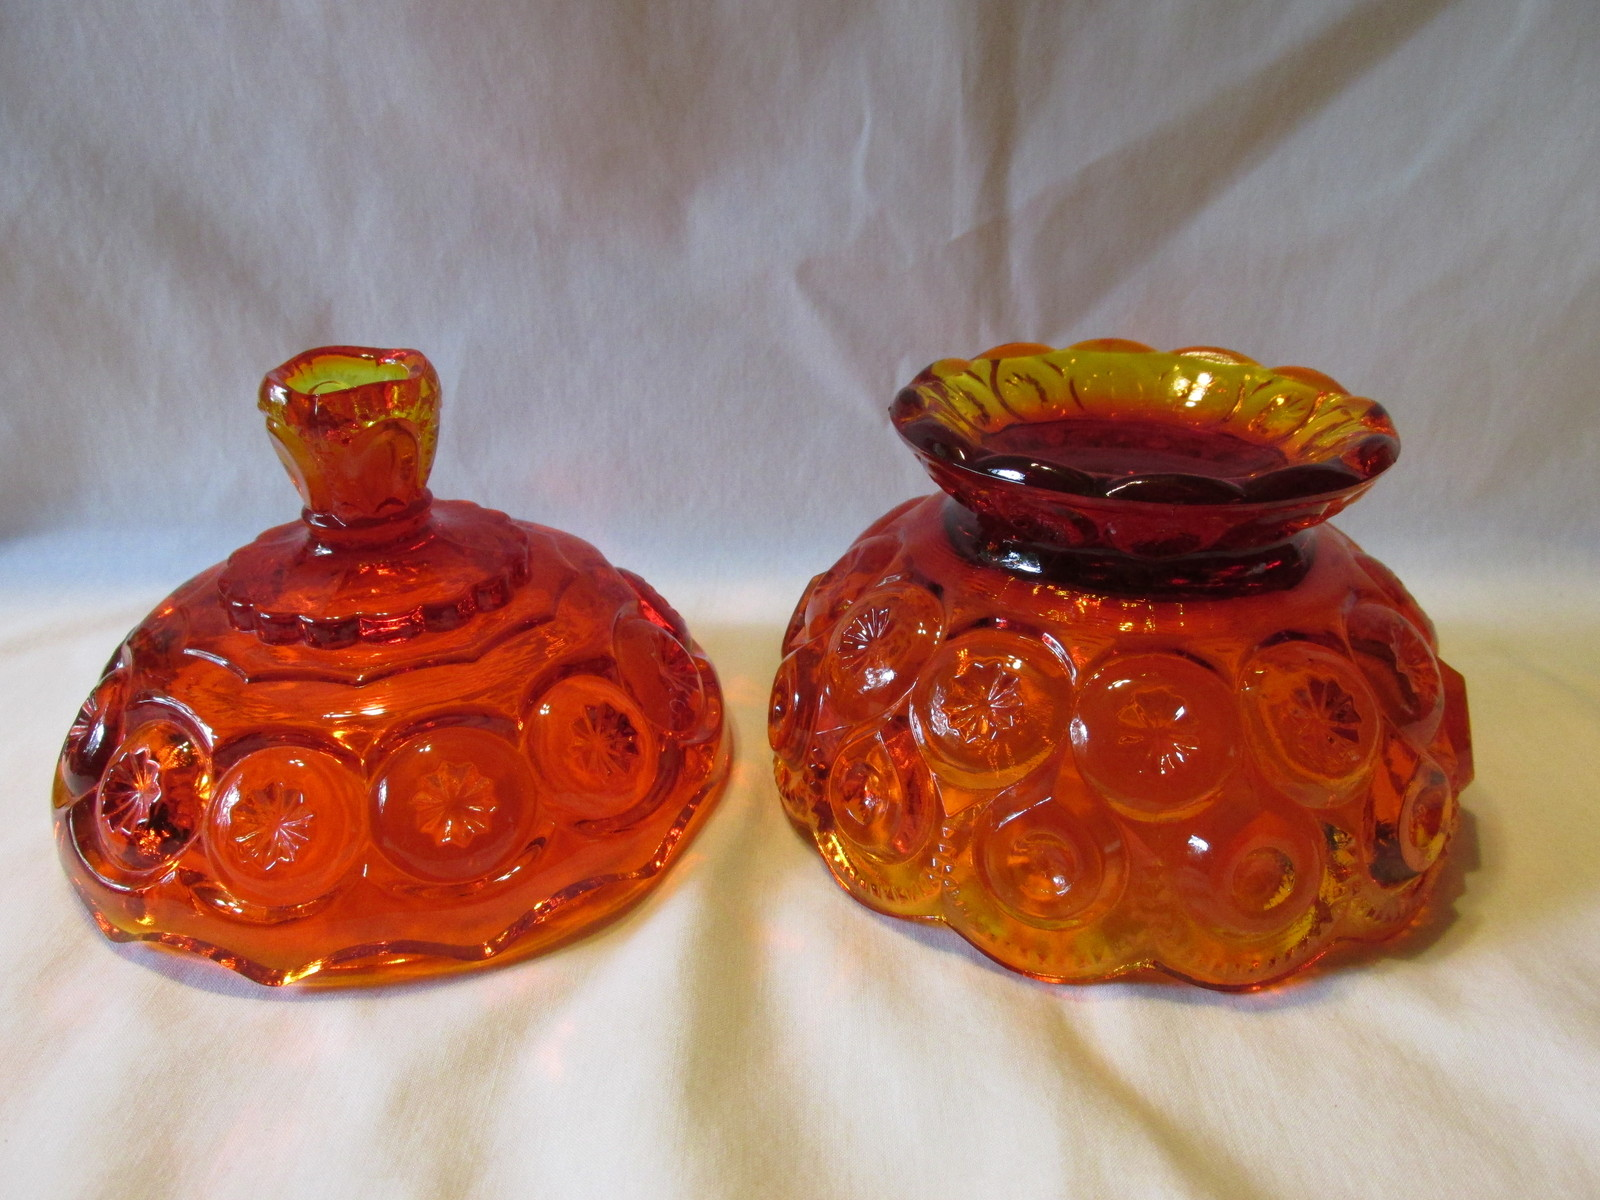 Moon and Star Amberina Lidded Compote - L. G. Wright Glass Co., 1930s-1960s